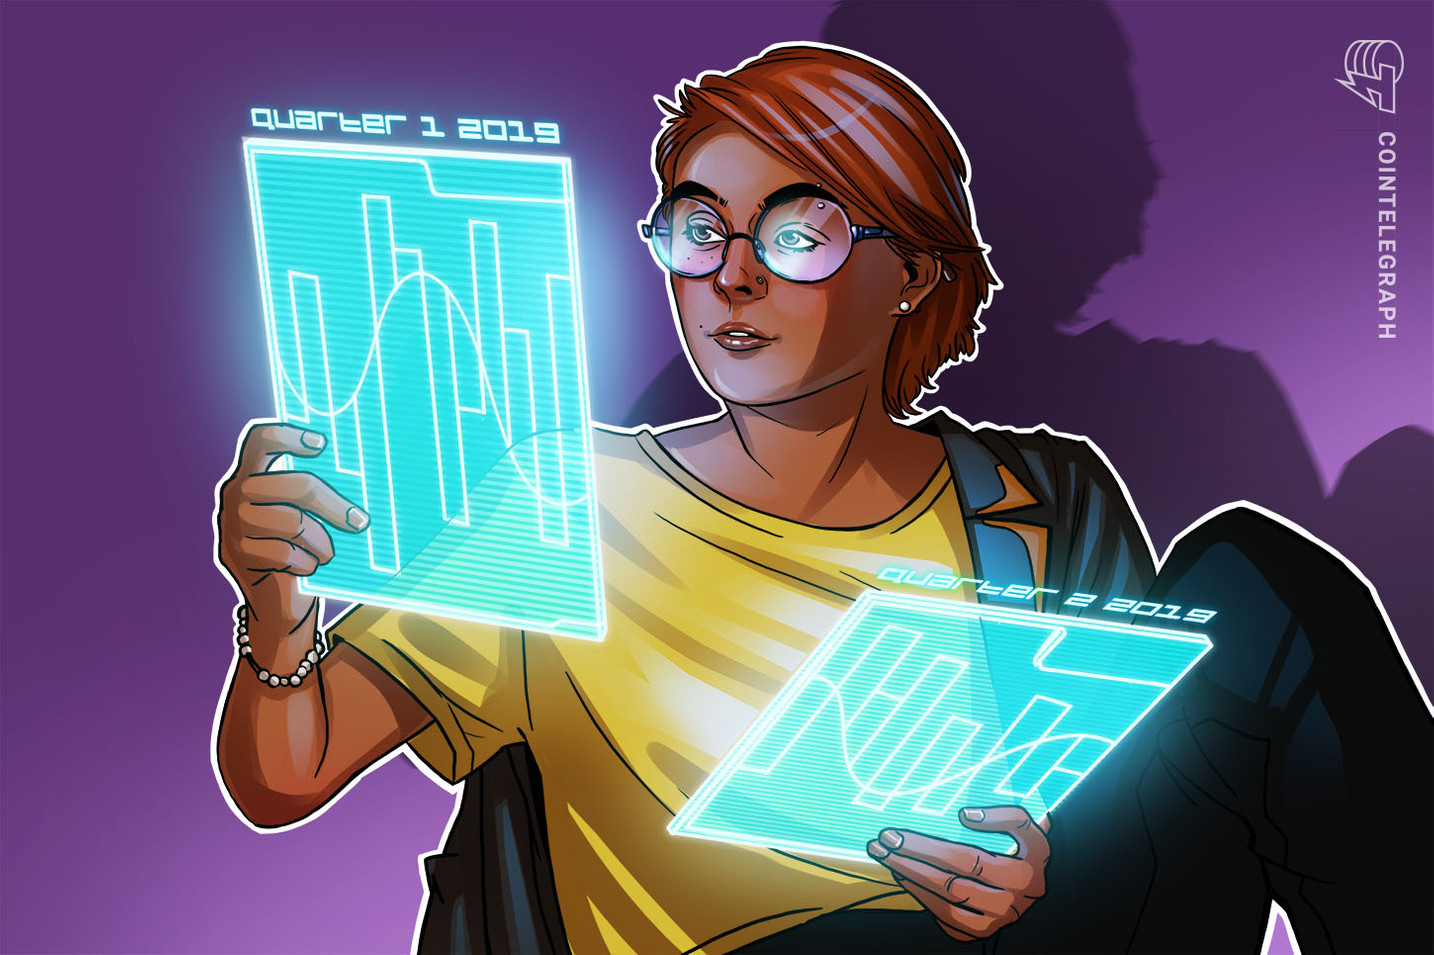 Crypto Industry in Numbers: How Does Q2 2019 Compare to the Past